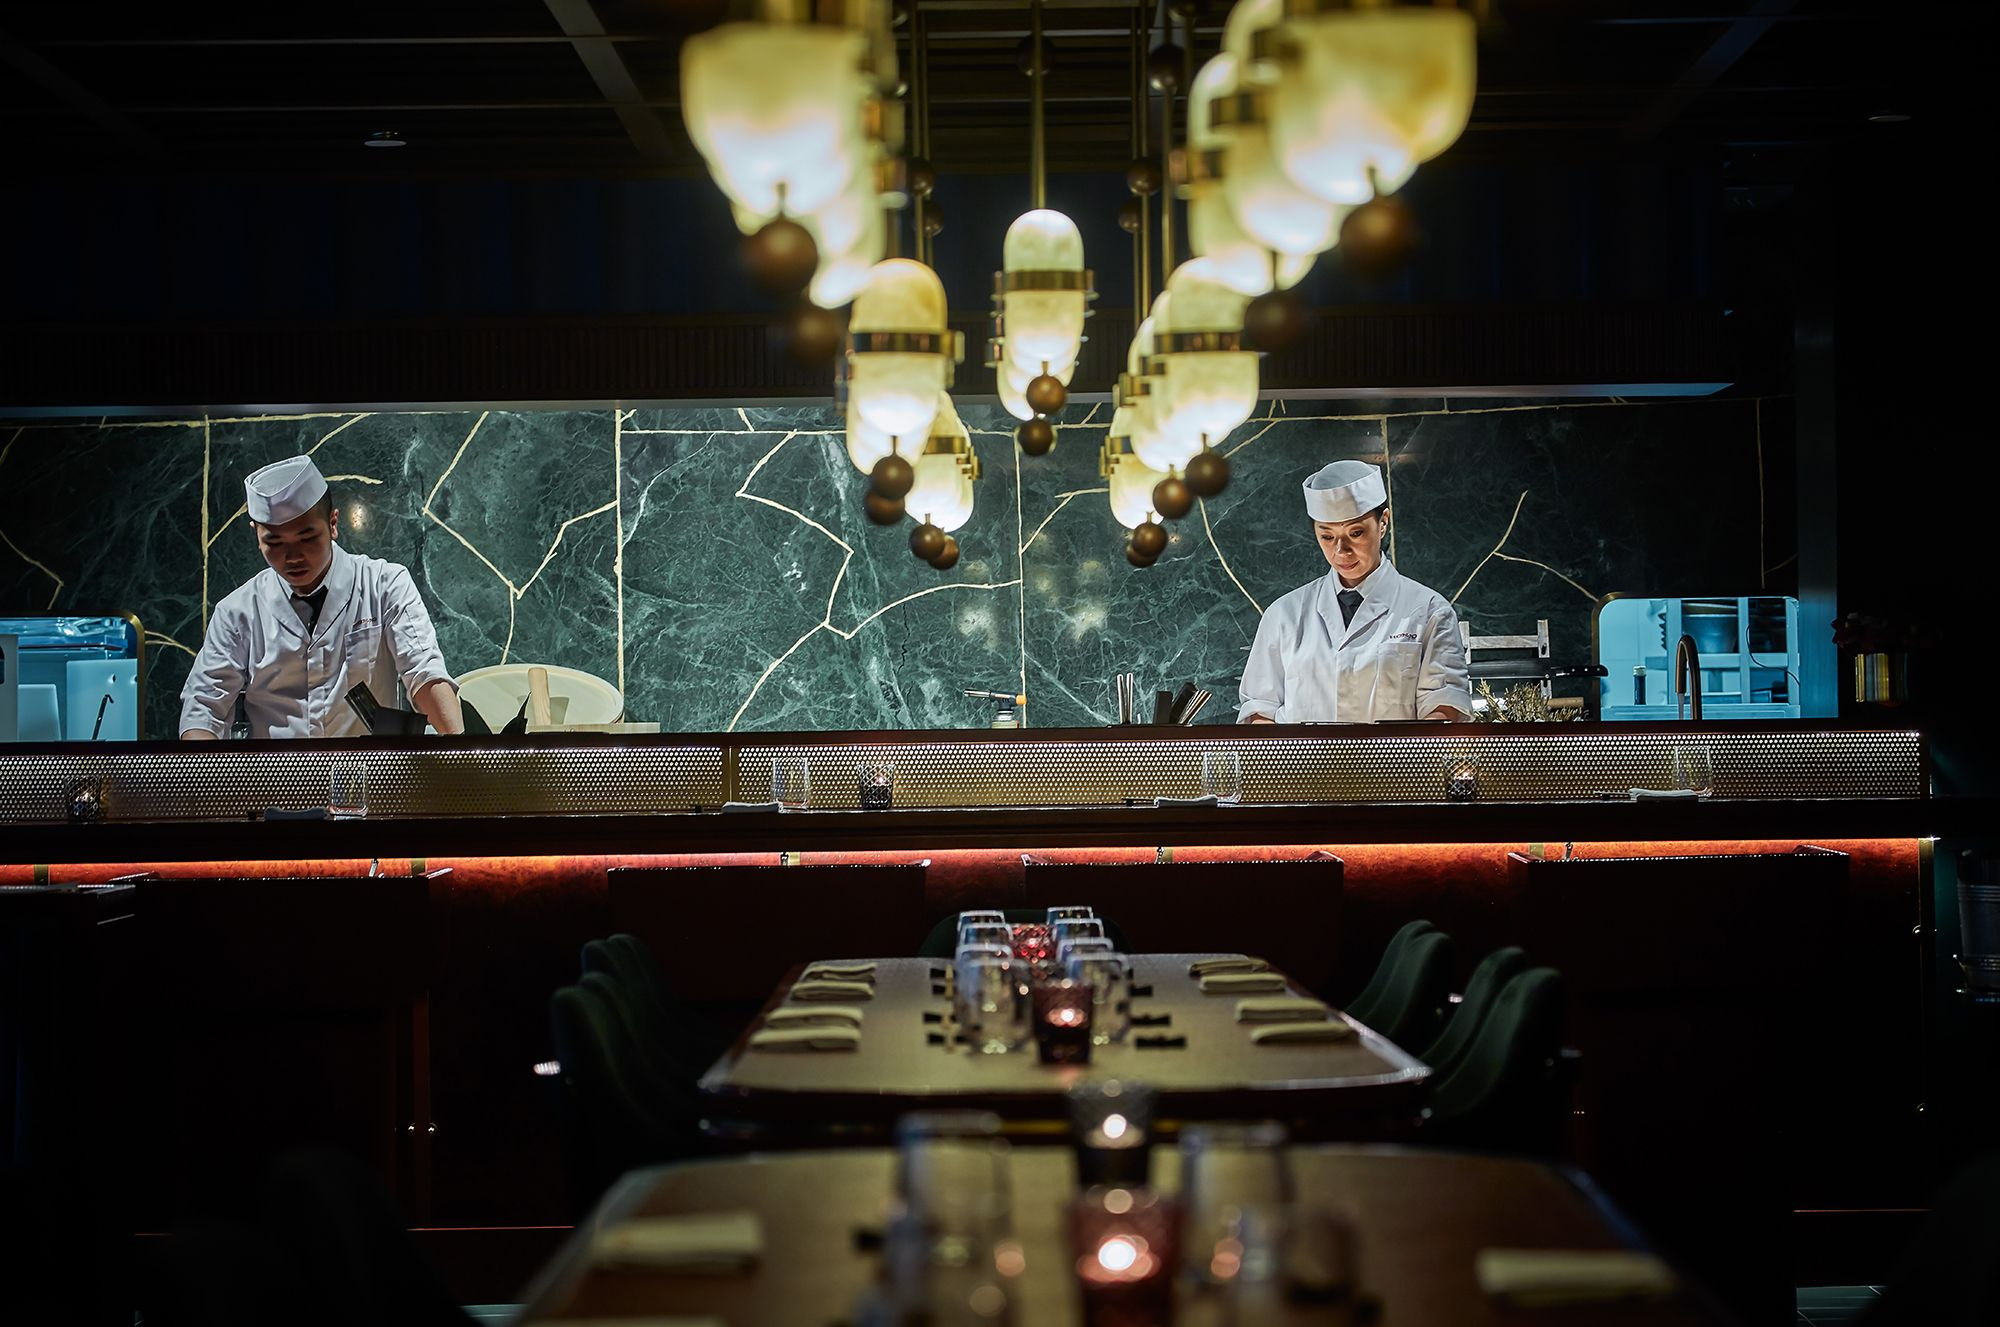 Restaurant Review: Japanese Newcomer Honjo Brings All The Glamour With None Of The Stuffiness